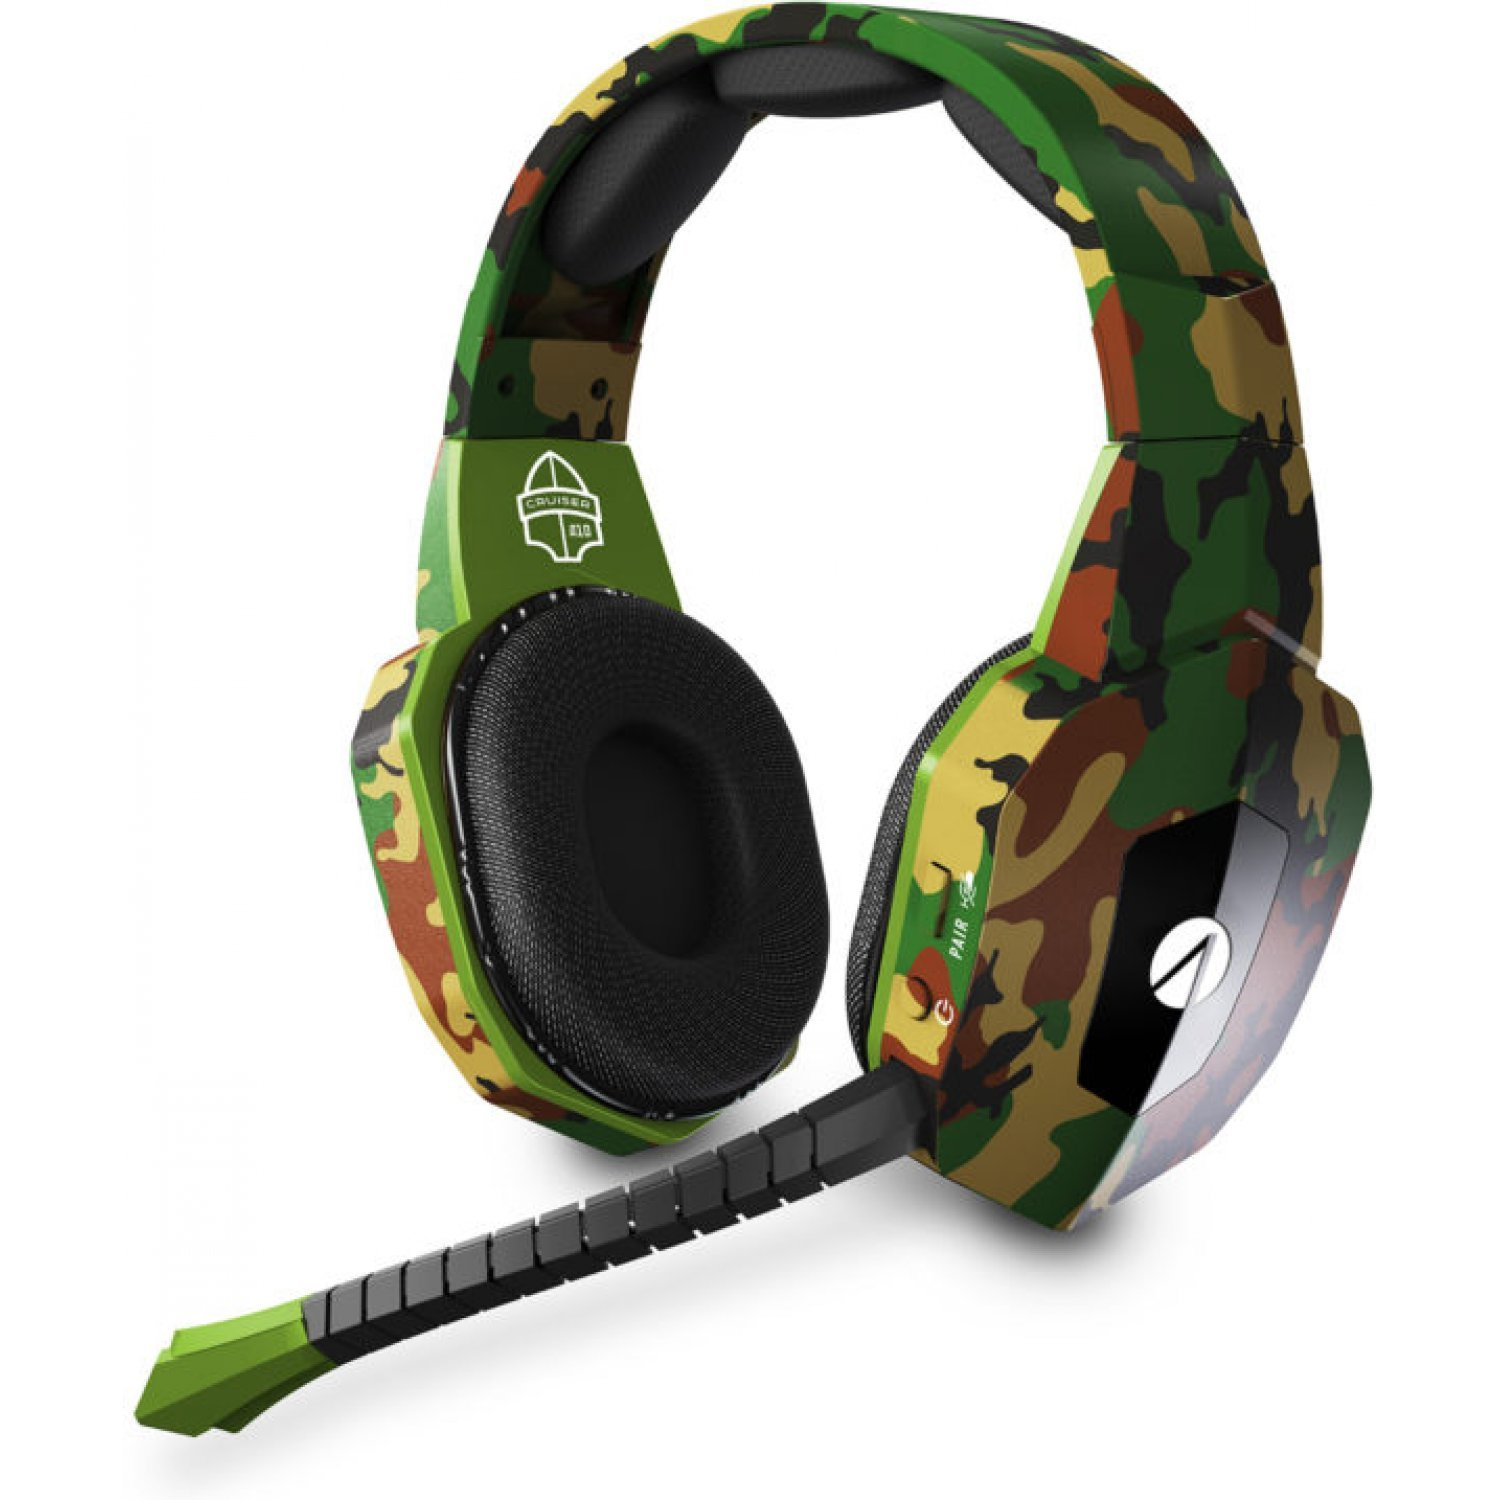 Xp Wireless Cruiser Stereo Gaming Headset For Xbox One Ps4 Pc